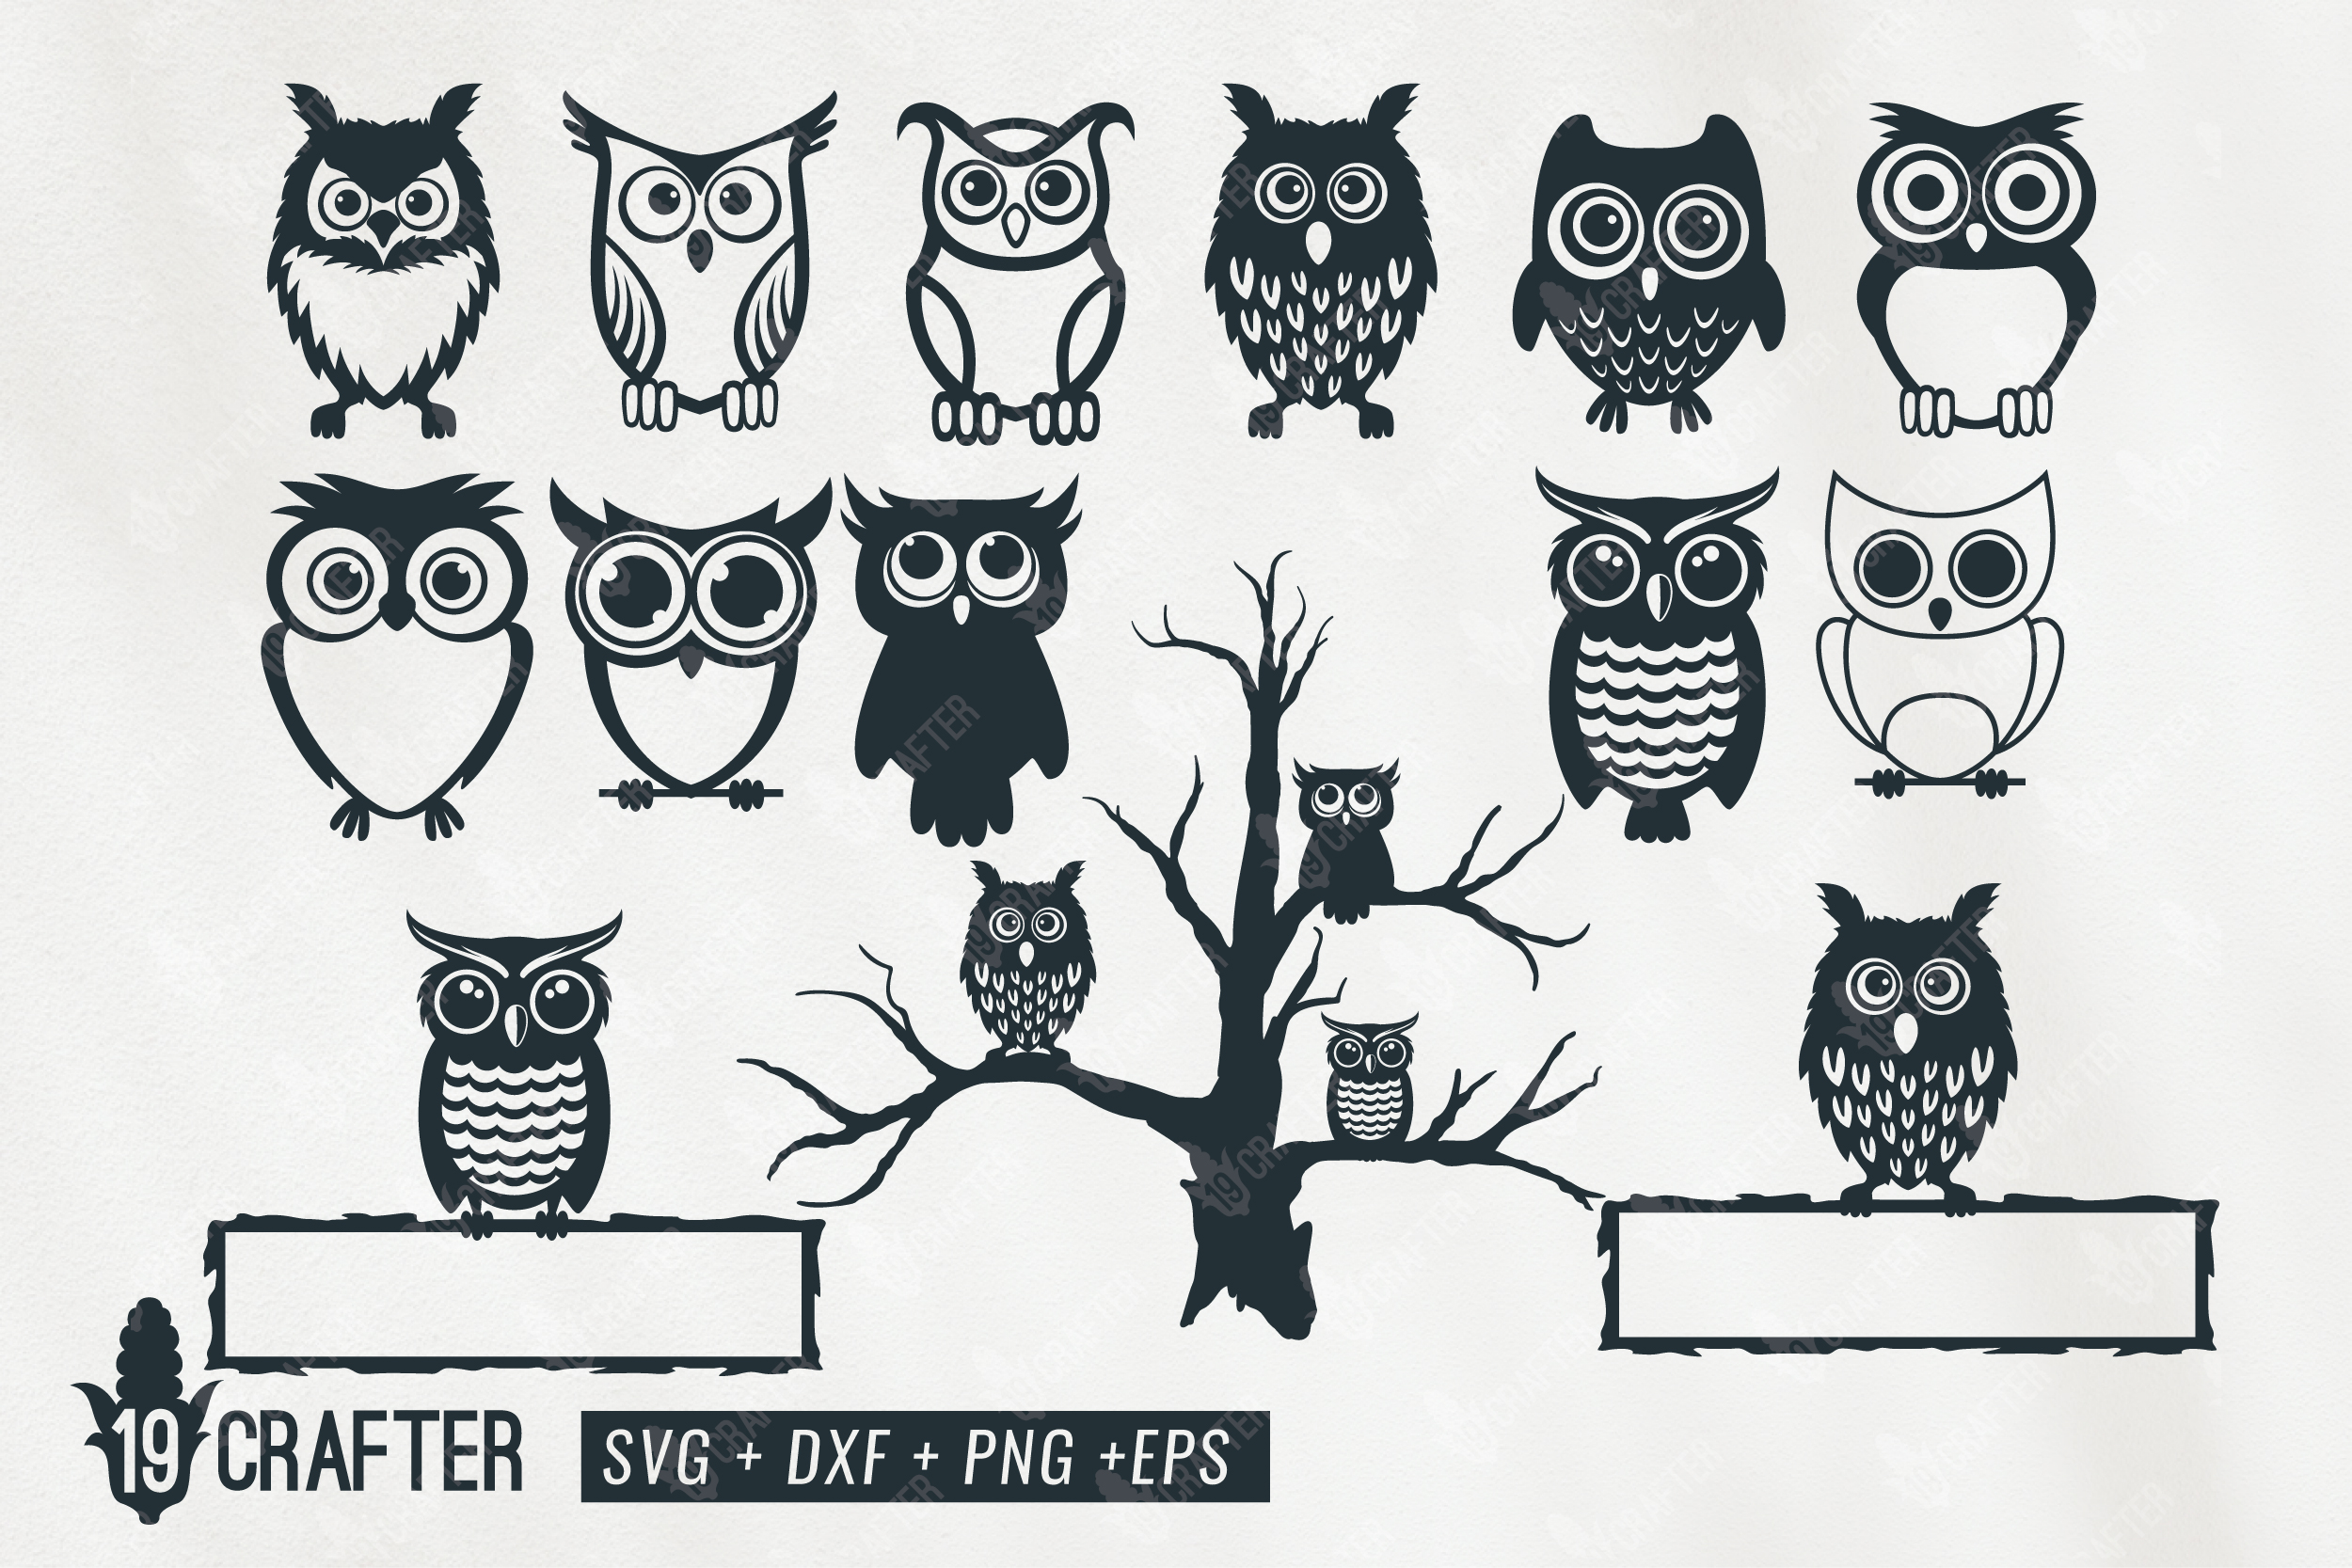 Cute Owl Character Bundle Graphic By Great19 Creative Fabrica